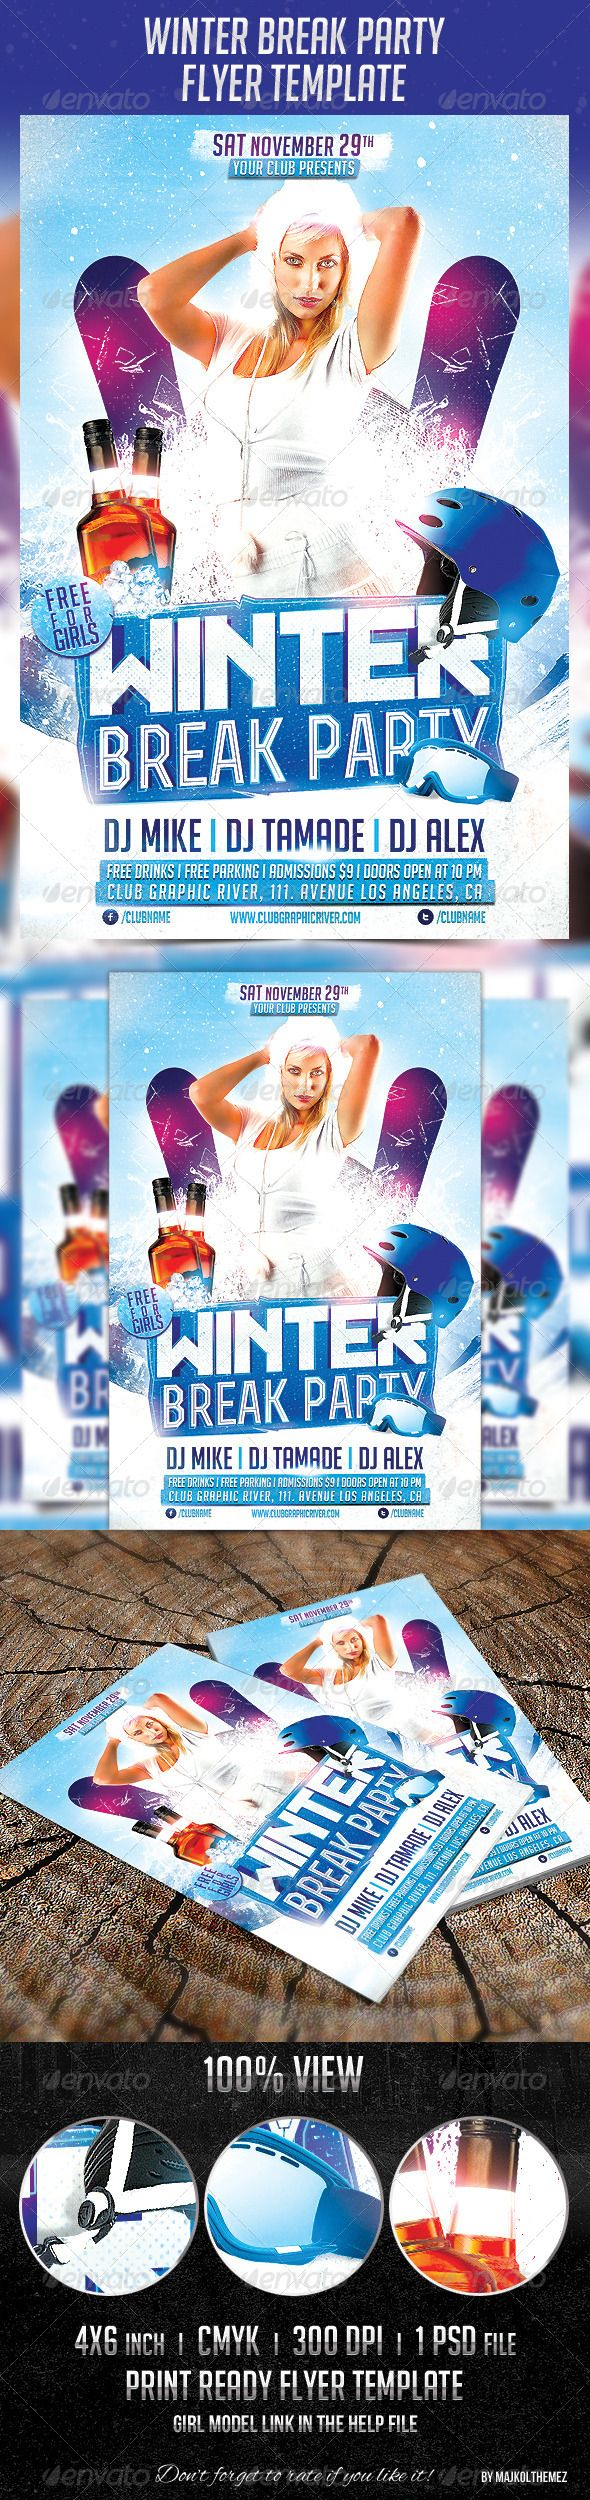 winter break party flyer template a good way to promote your winter break   winter holiday